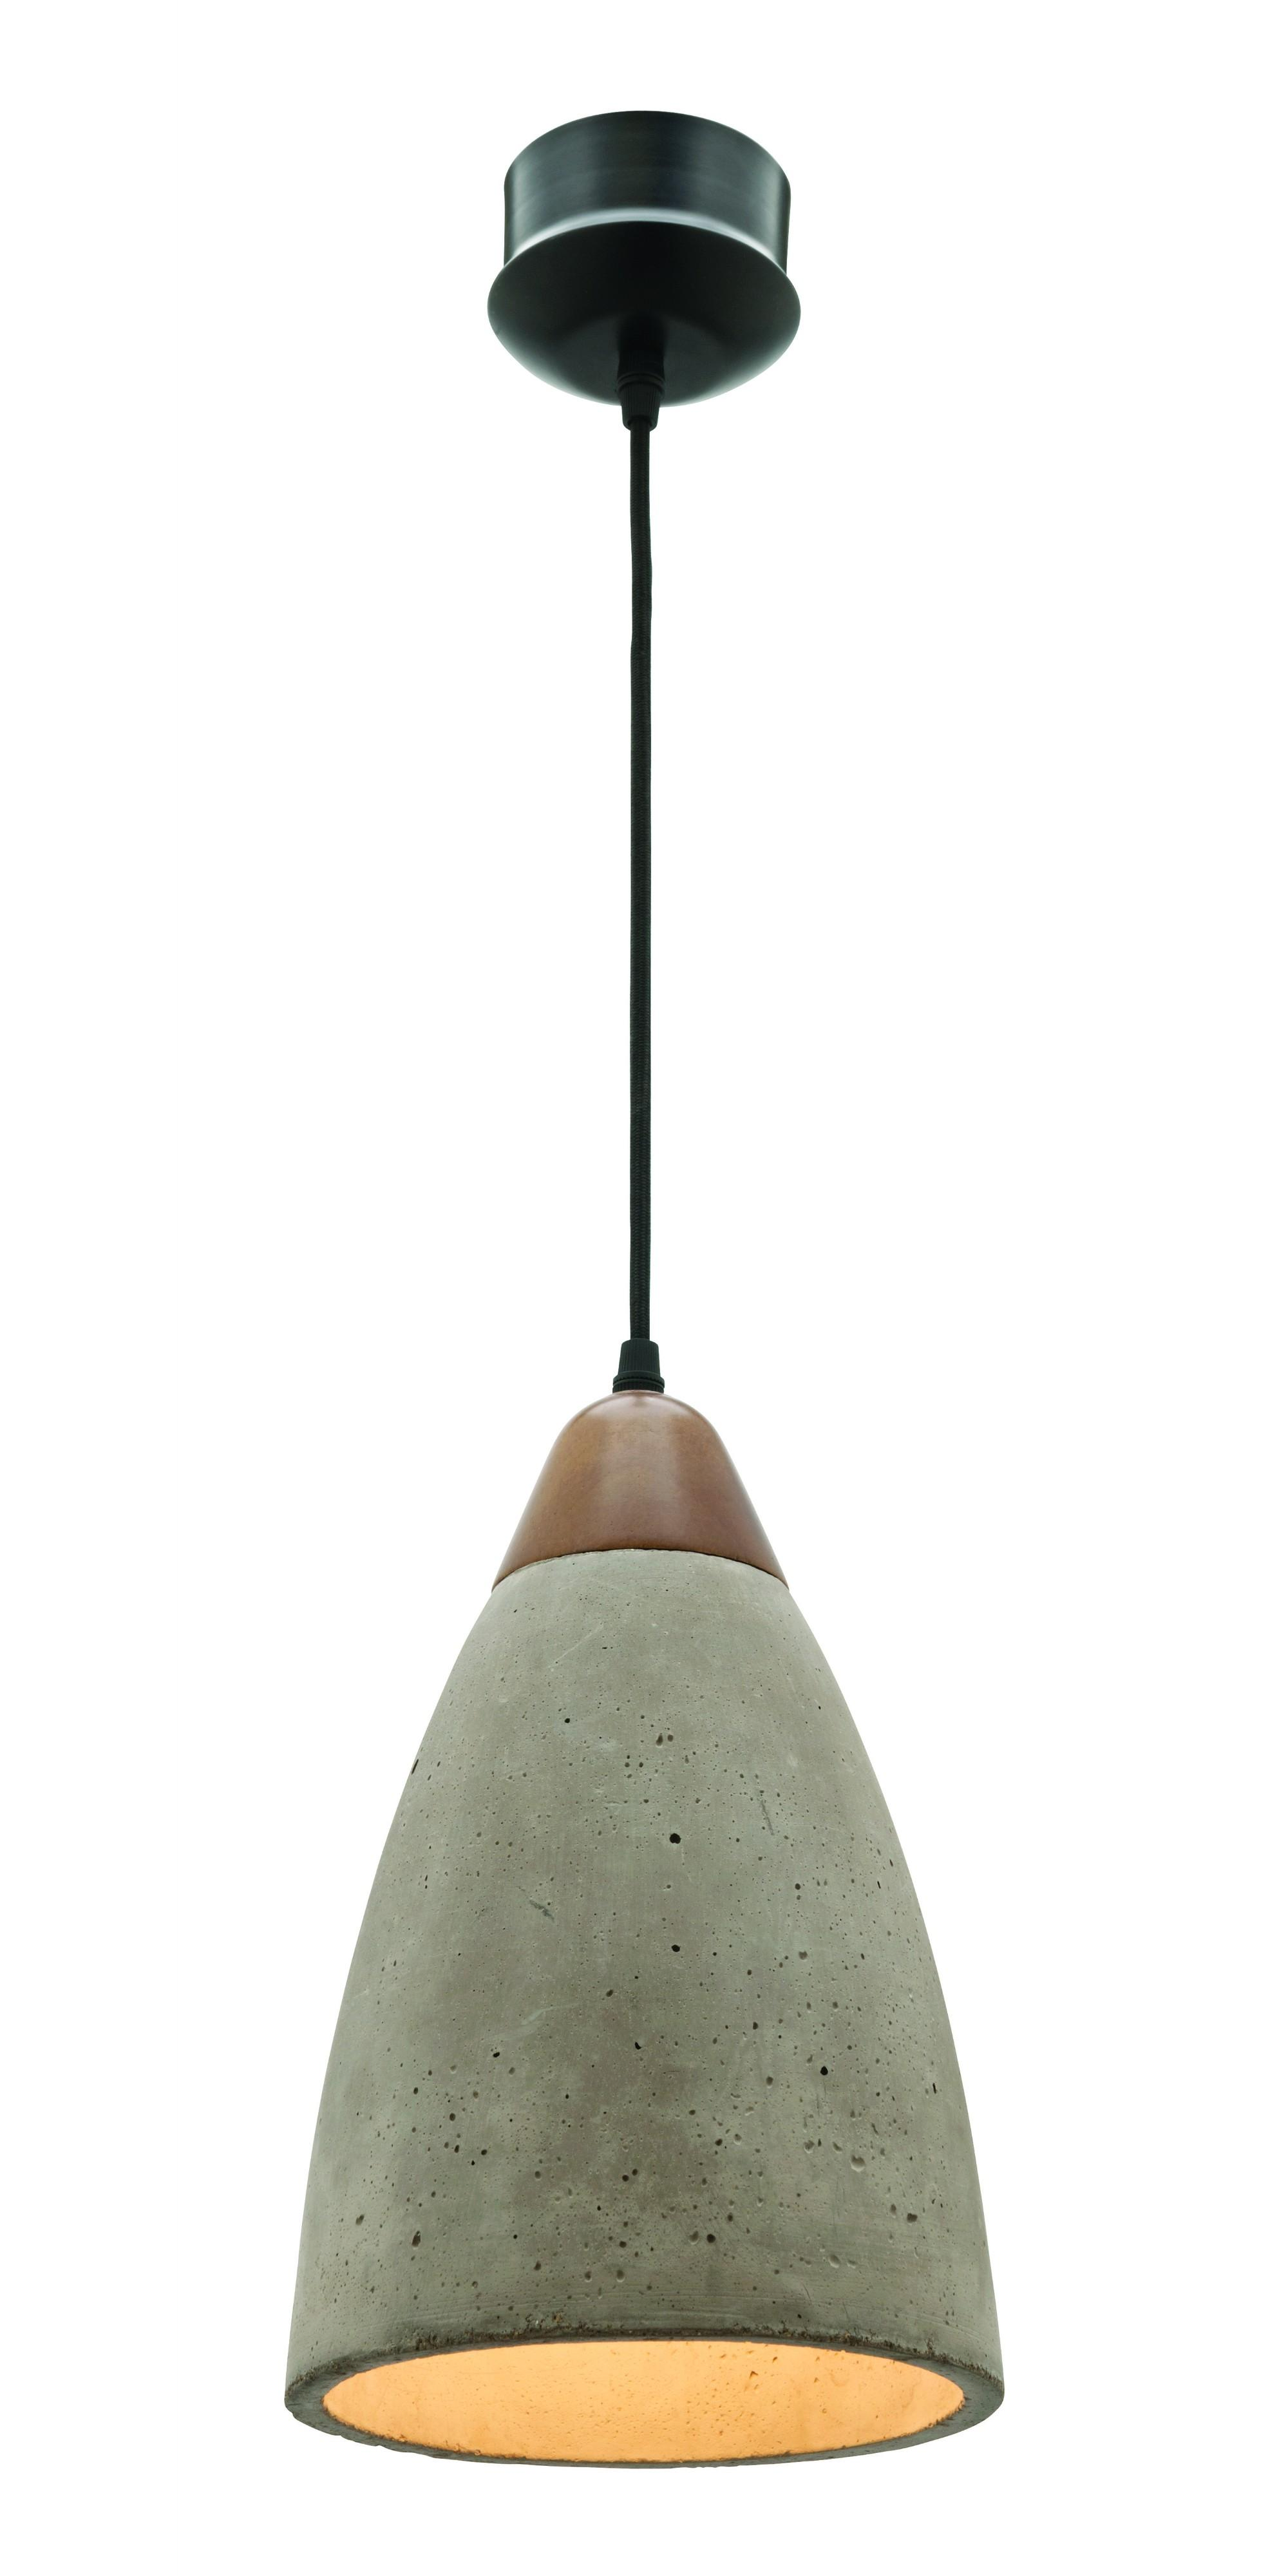 Danska concrete timber pendant pendants modern product danska concrete timber pendant mozeypictures Image collections